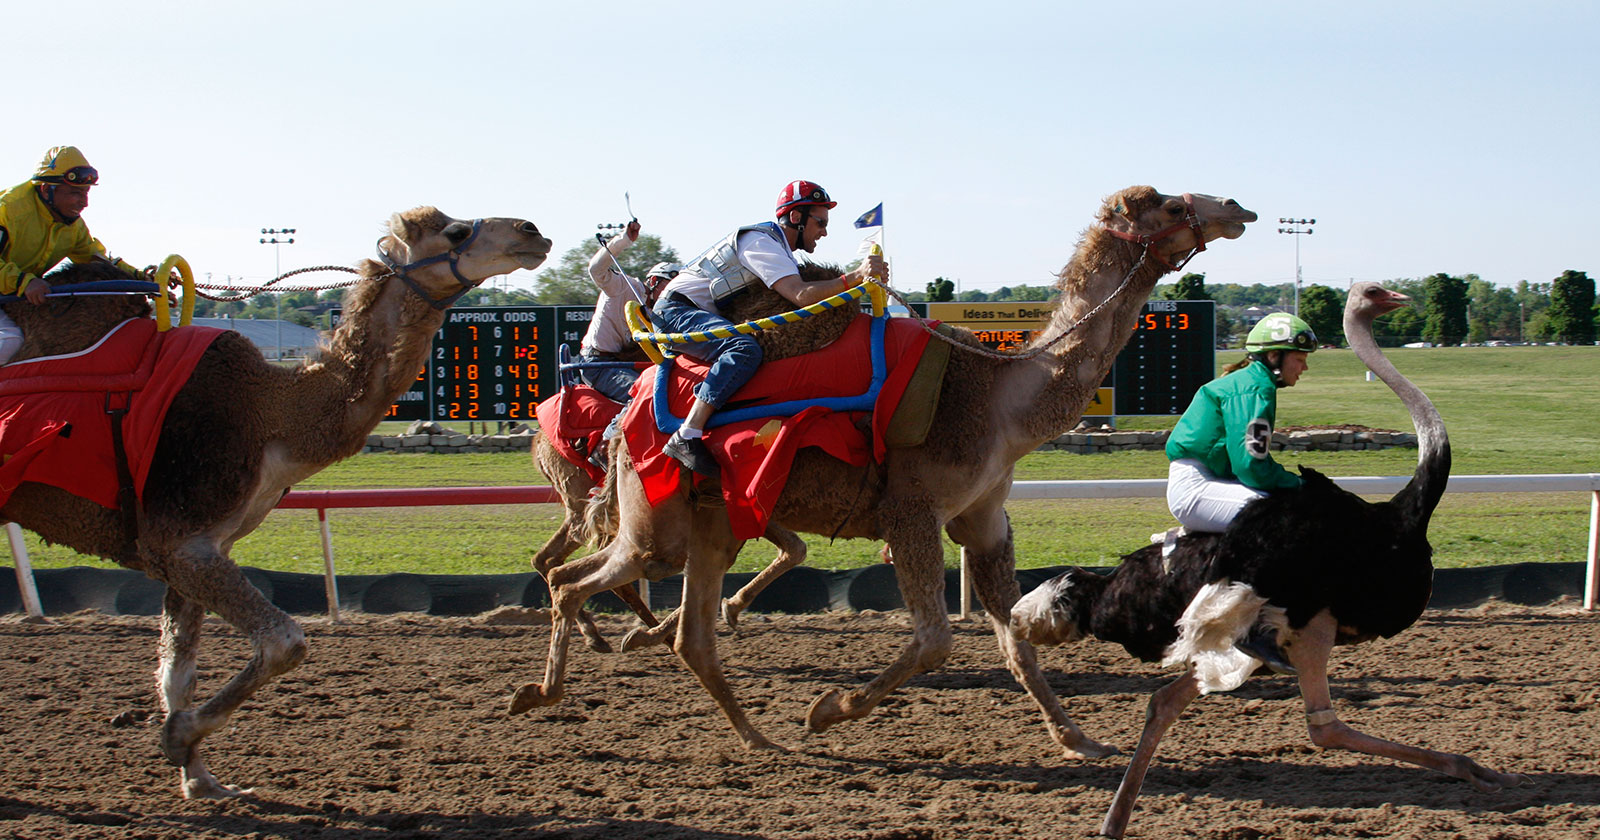 Poster of jockeys racing camels and ostrich